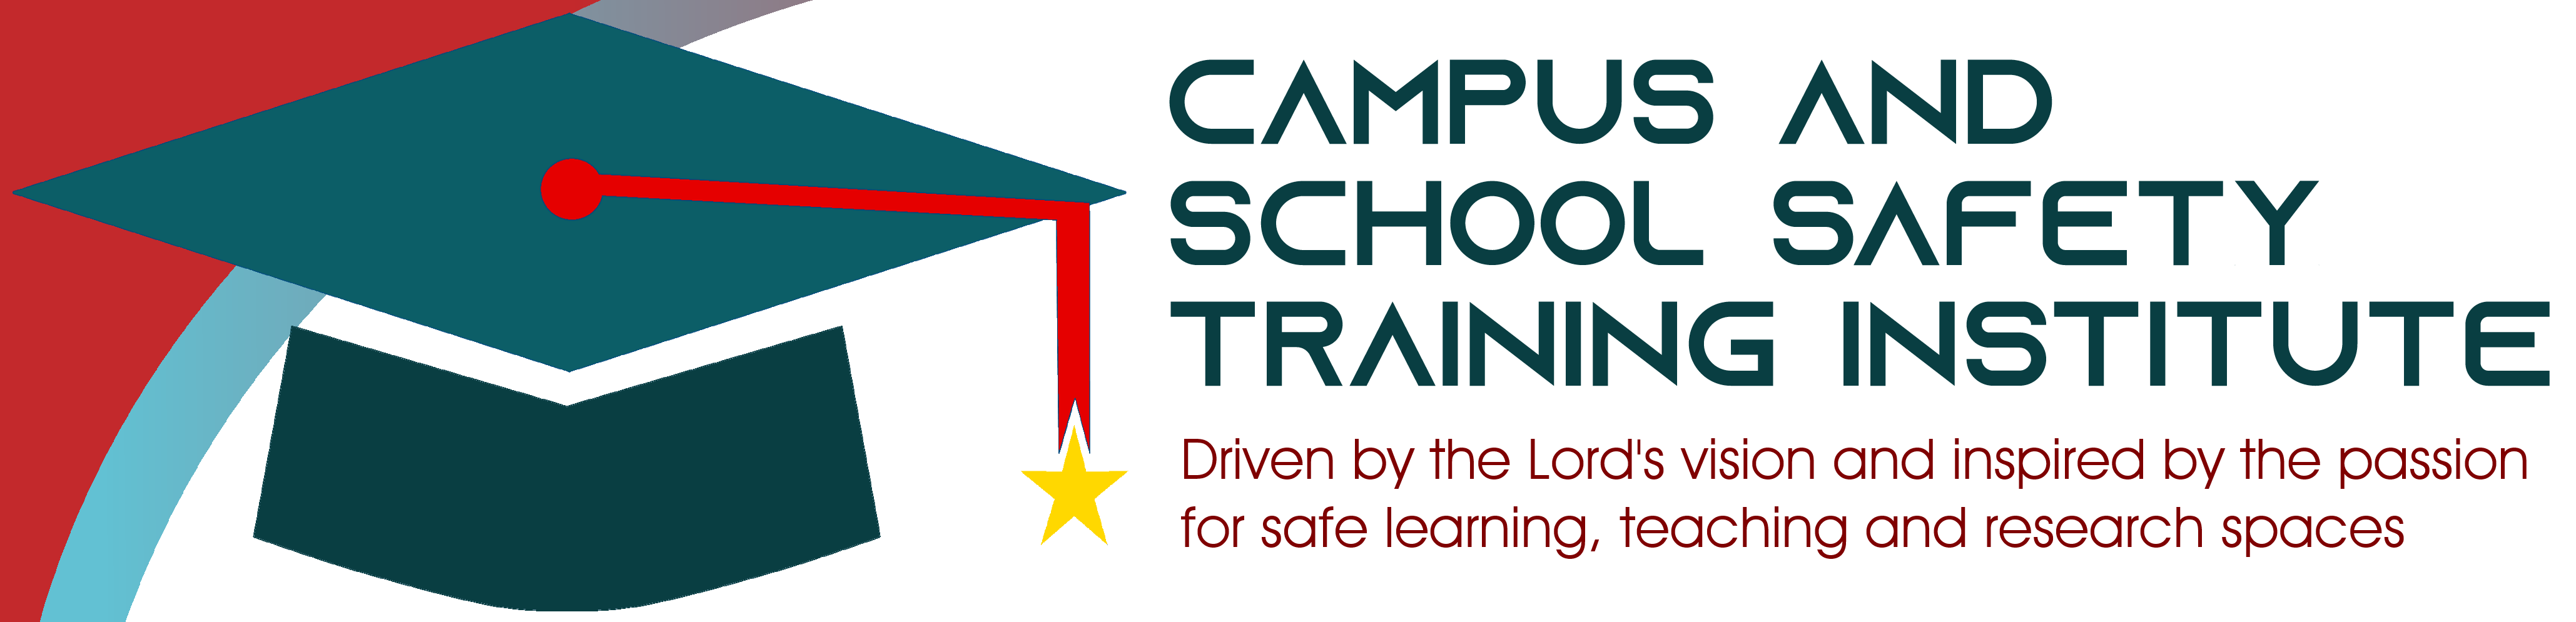 Campus and Schools Safety Training Institute